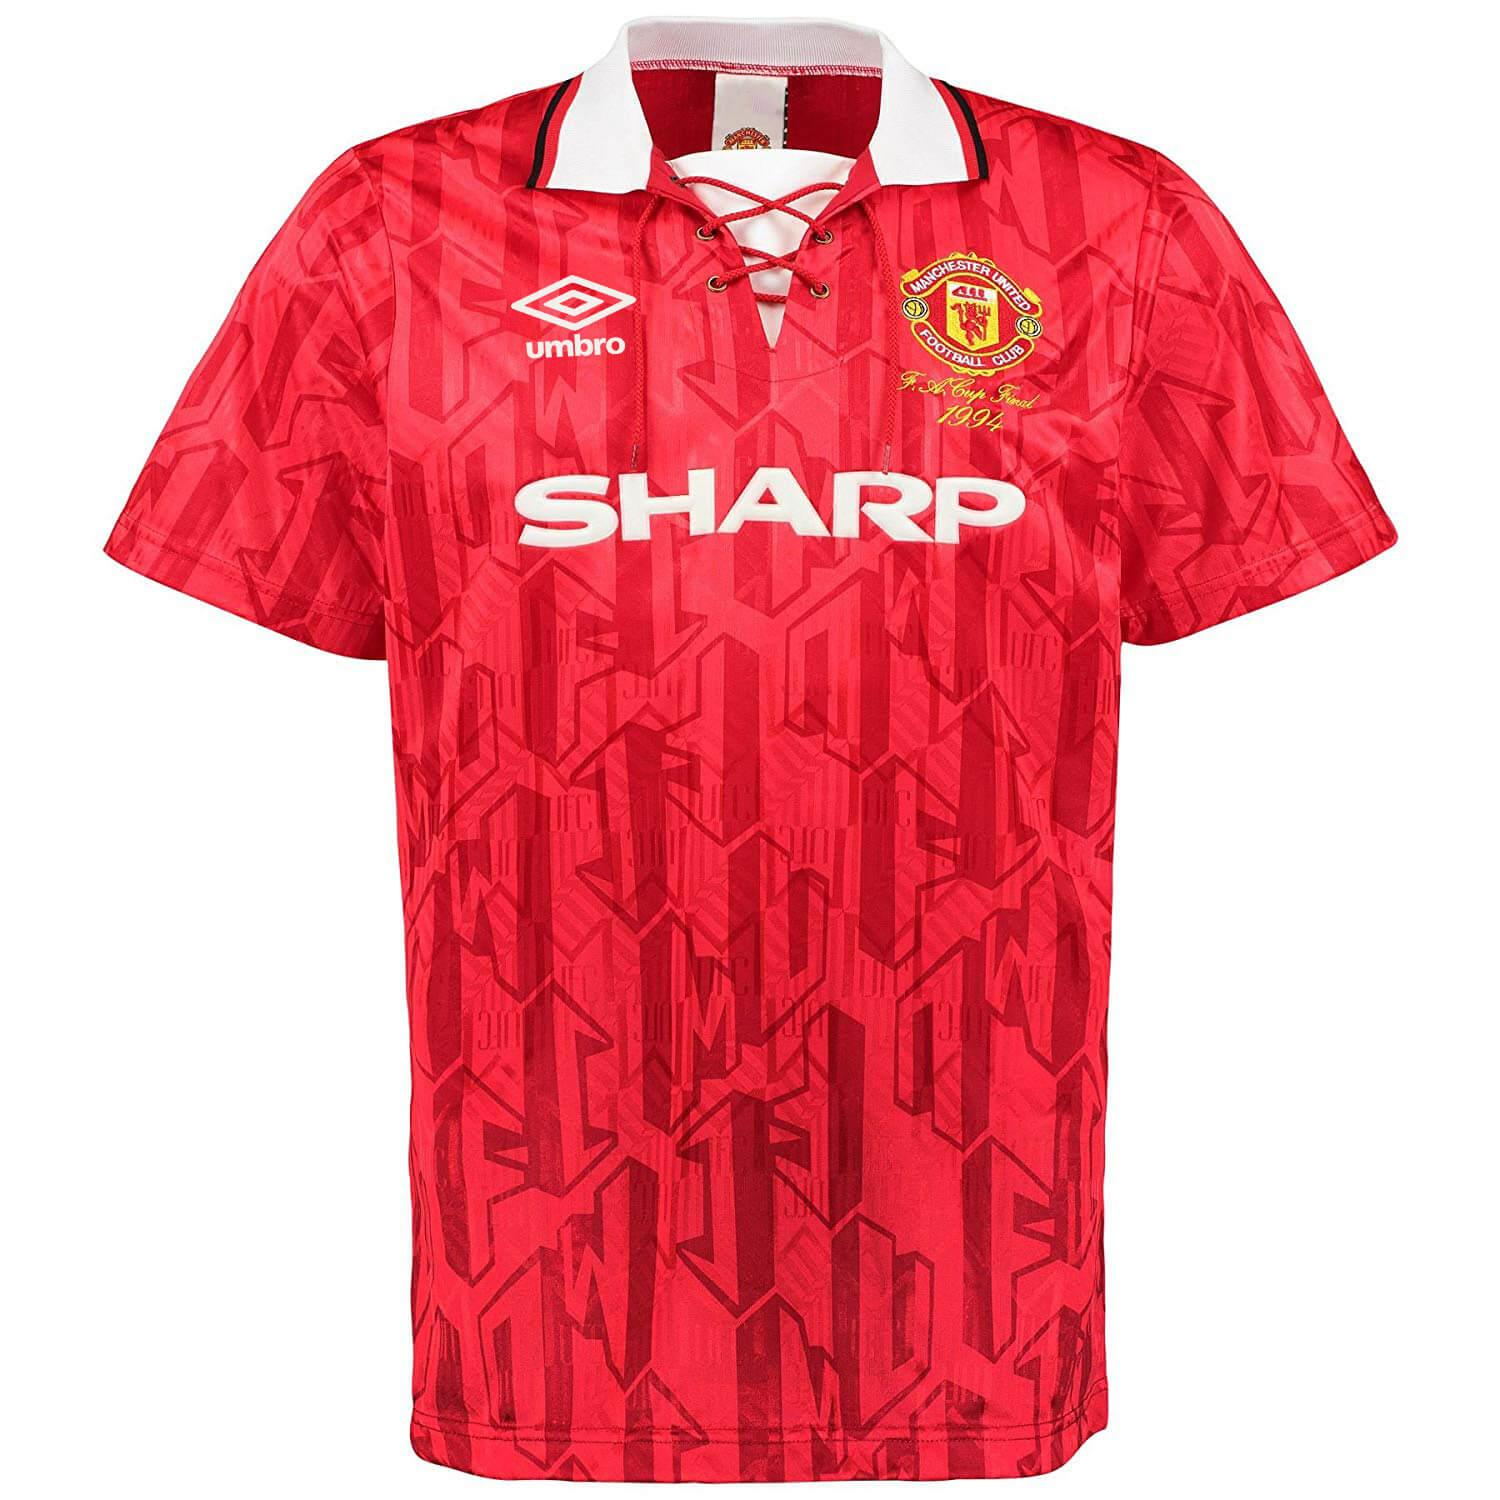 e2d5bfeaf Brand New Manchester United Umbro 1994 FA Cup Final Home Retro Football  Jersey Import From UK